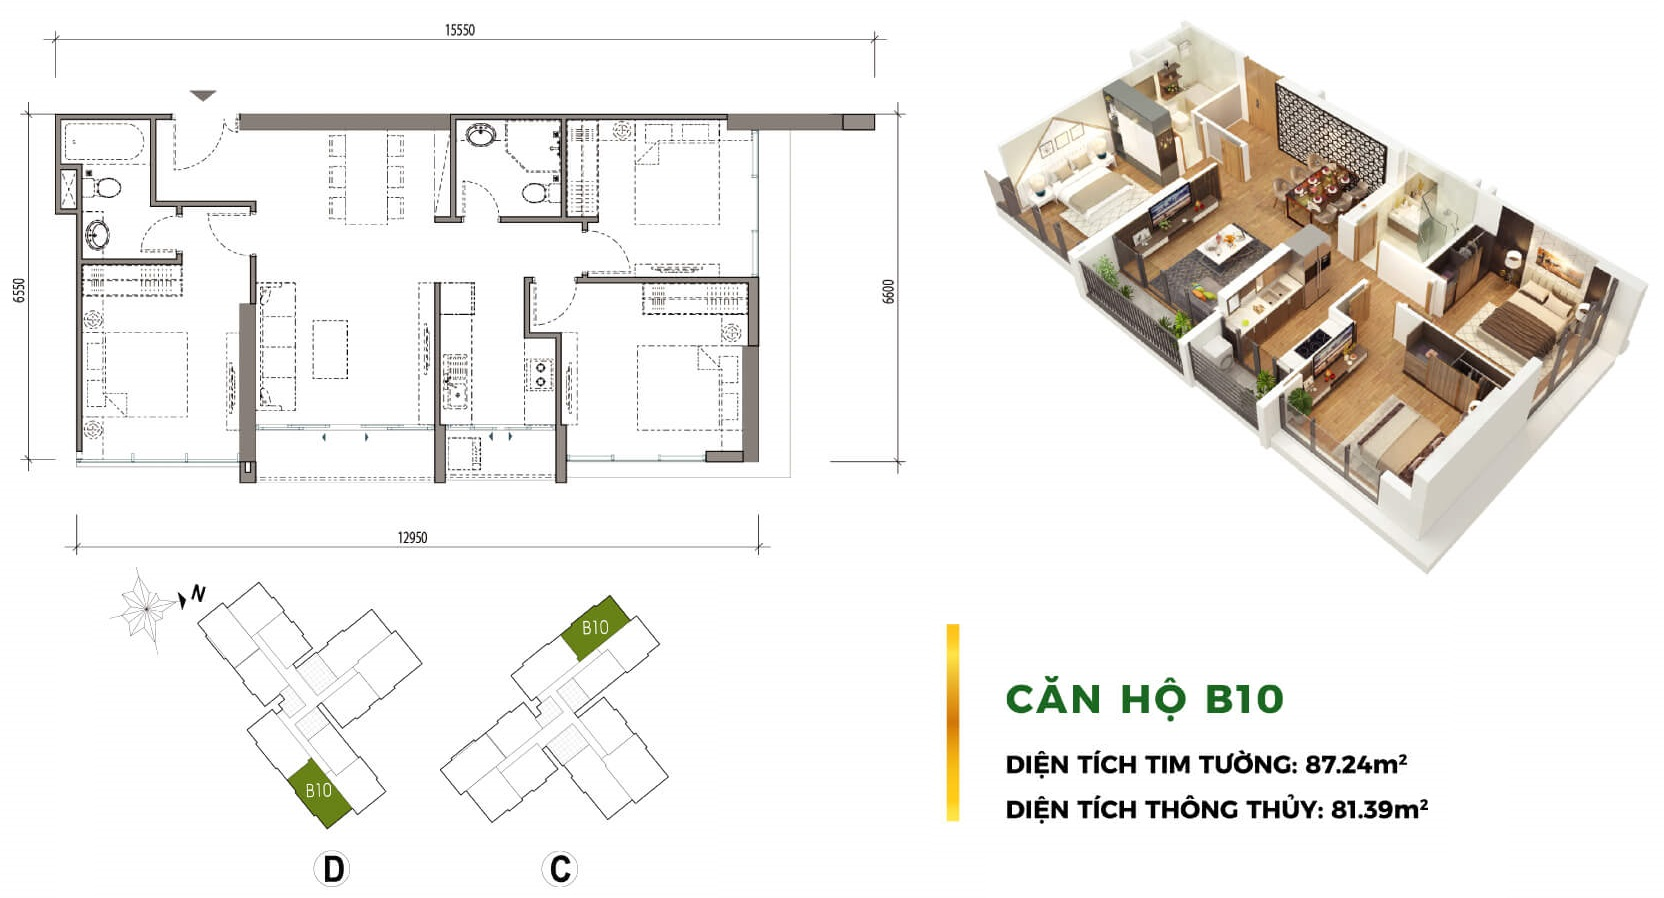 thiet-ke-can-ho-b10-du-an-ecogreen-saigon